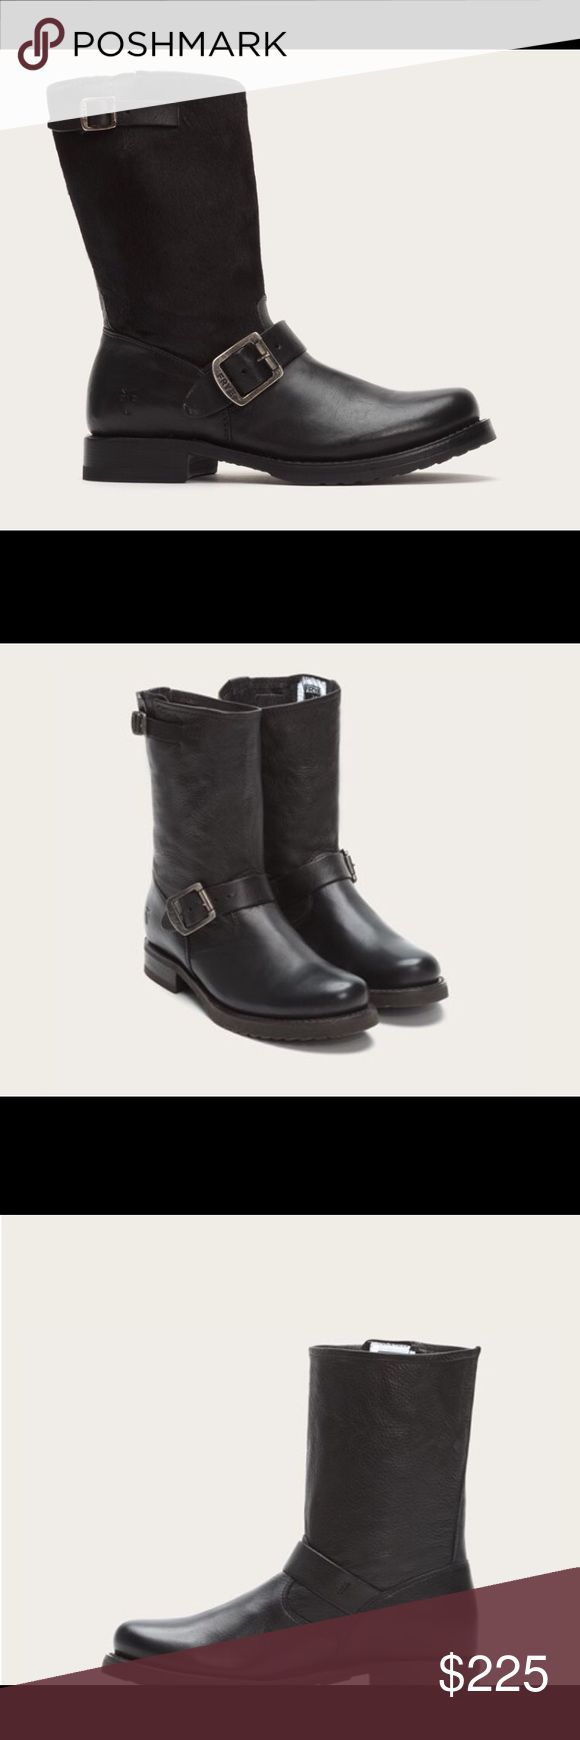 FRYE VERONICA SHORT BOOTS These boots are super cool and edgy.  Unfortunately, I'm not!!!!  Excellent condition at a great price for this quality! Frye Shoes Ankle Boots & Booties